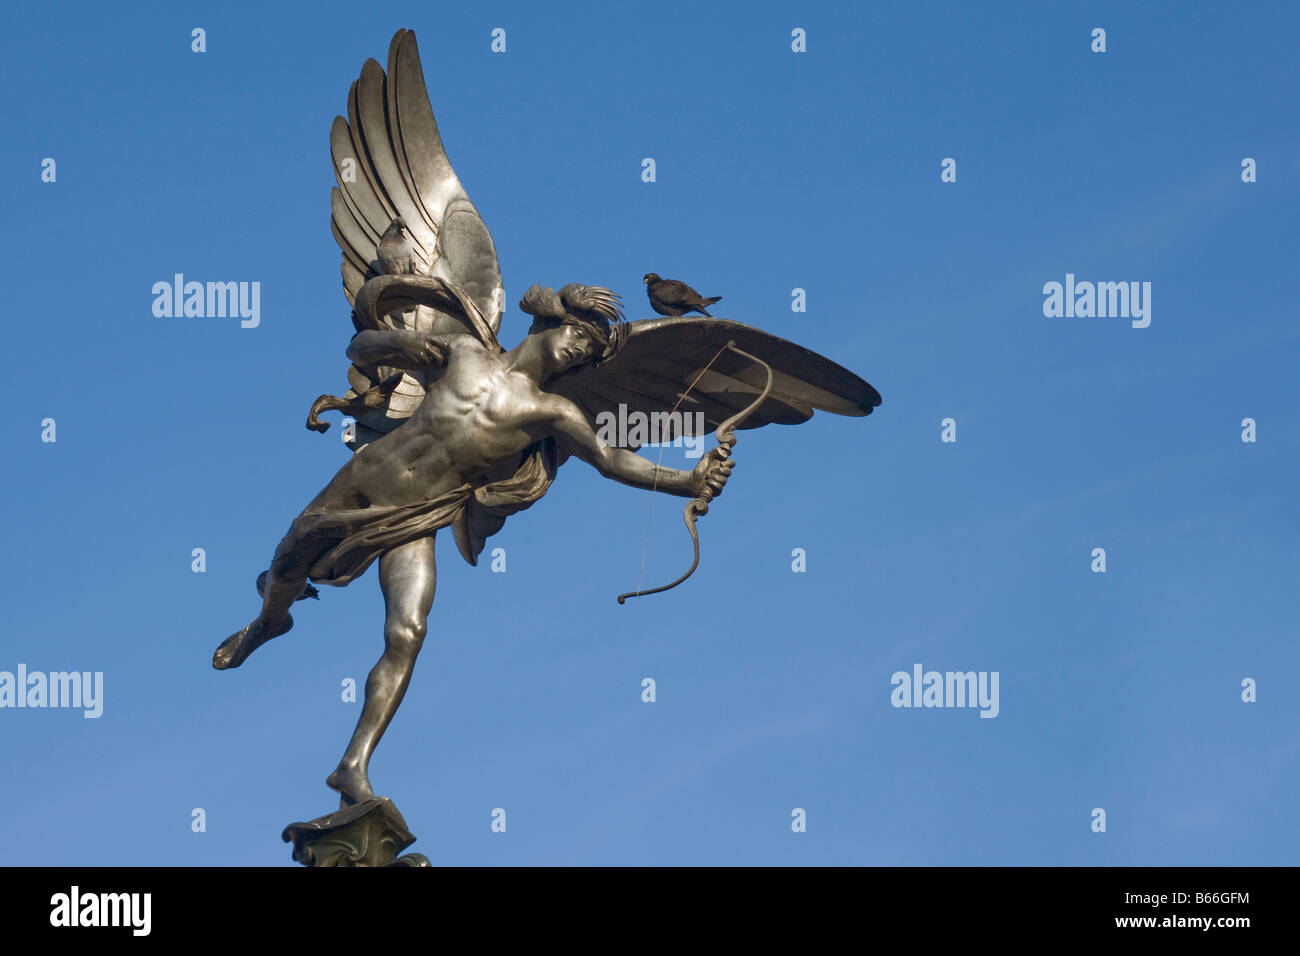 Two pigeons sitting on statue of Eros. Piccadilly Circus, London, England, UK - Stock Image